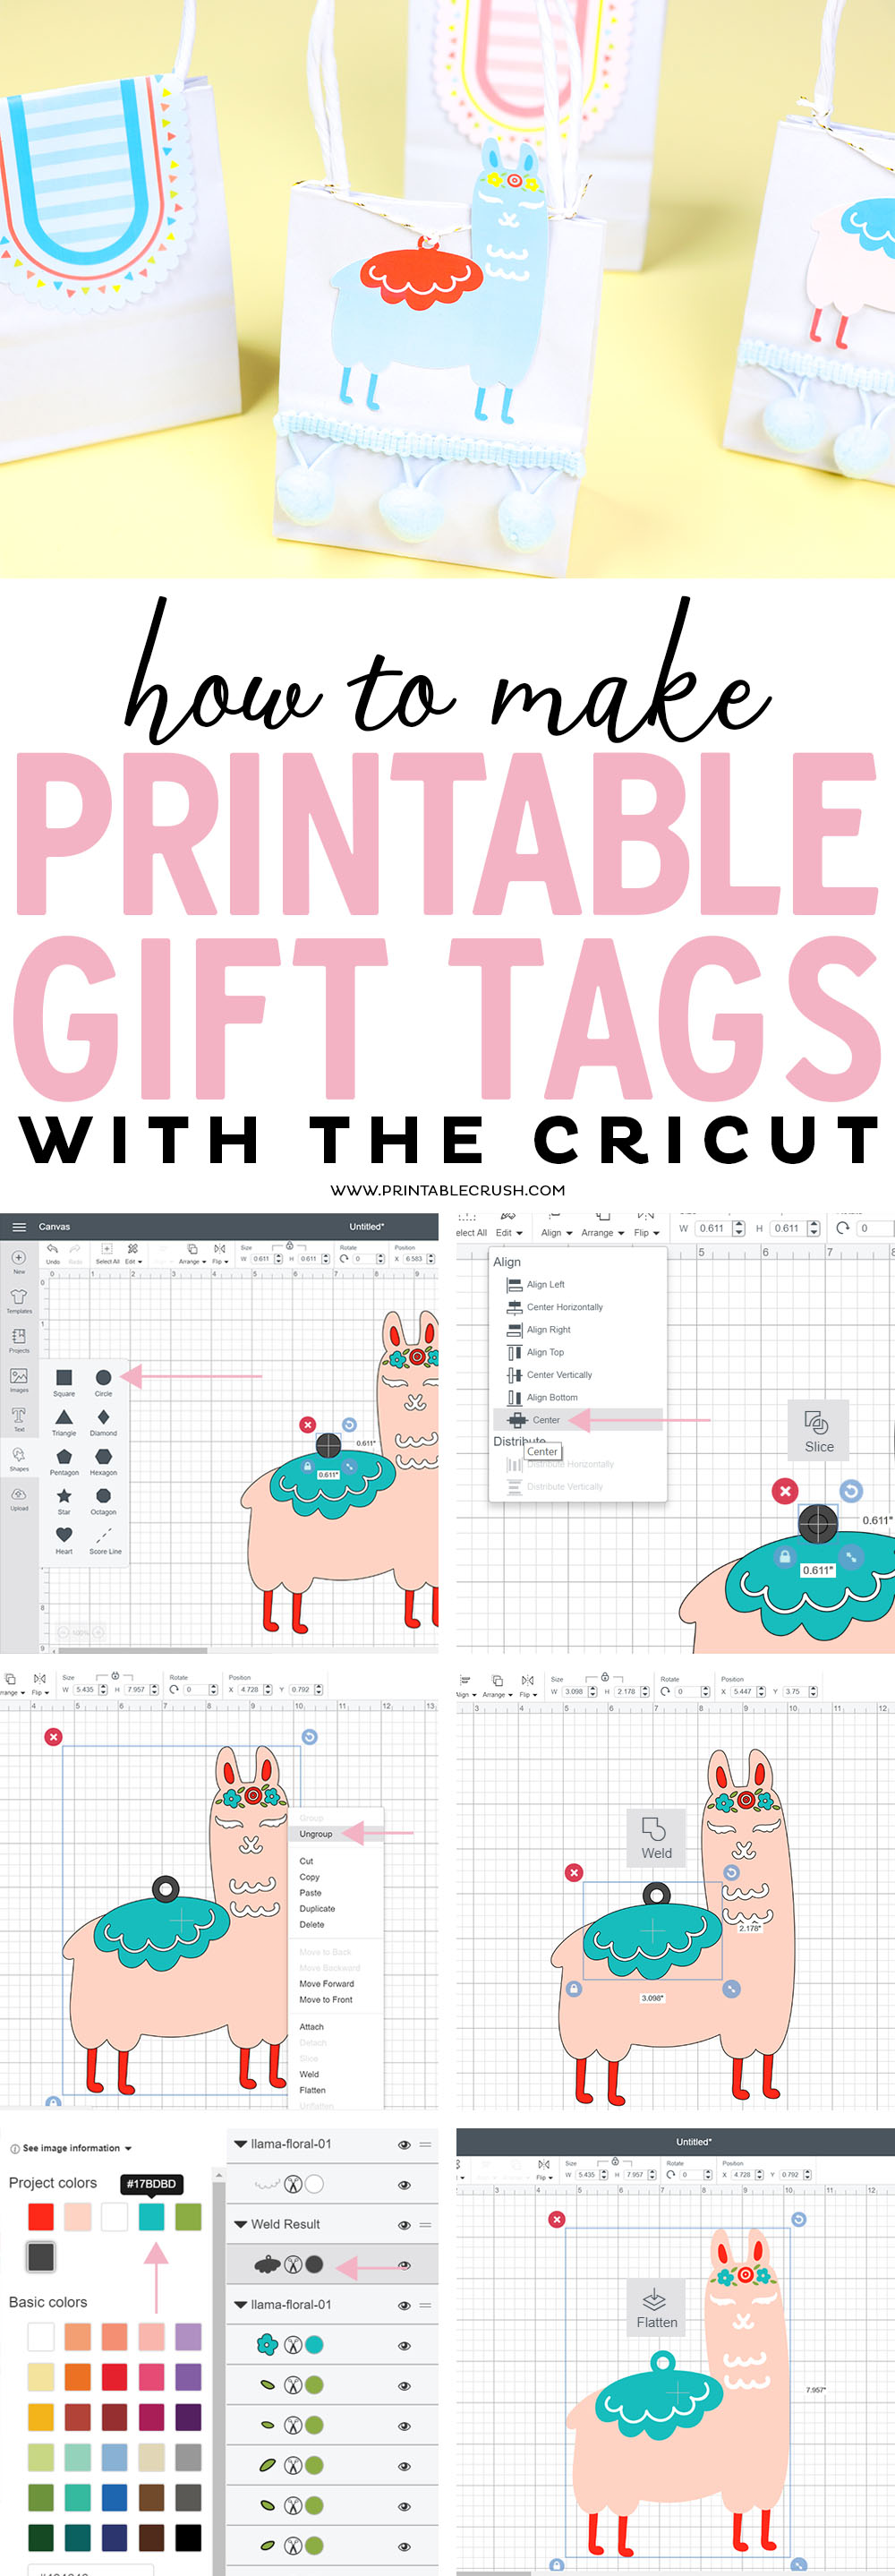 These adorable Llamagift tags were easy to create, and I'm showing you how you can make Printable Gift Tags with the Cricut using these SVG Files! #svgfiles #llama #fiesta #cricuttutorial #cricutmade #cricutdesignspace via @printablecrush